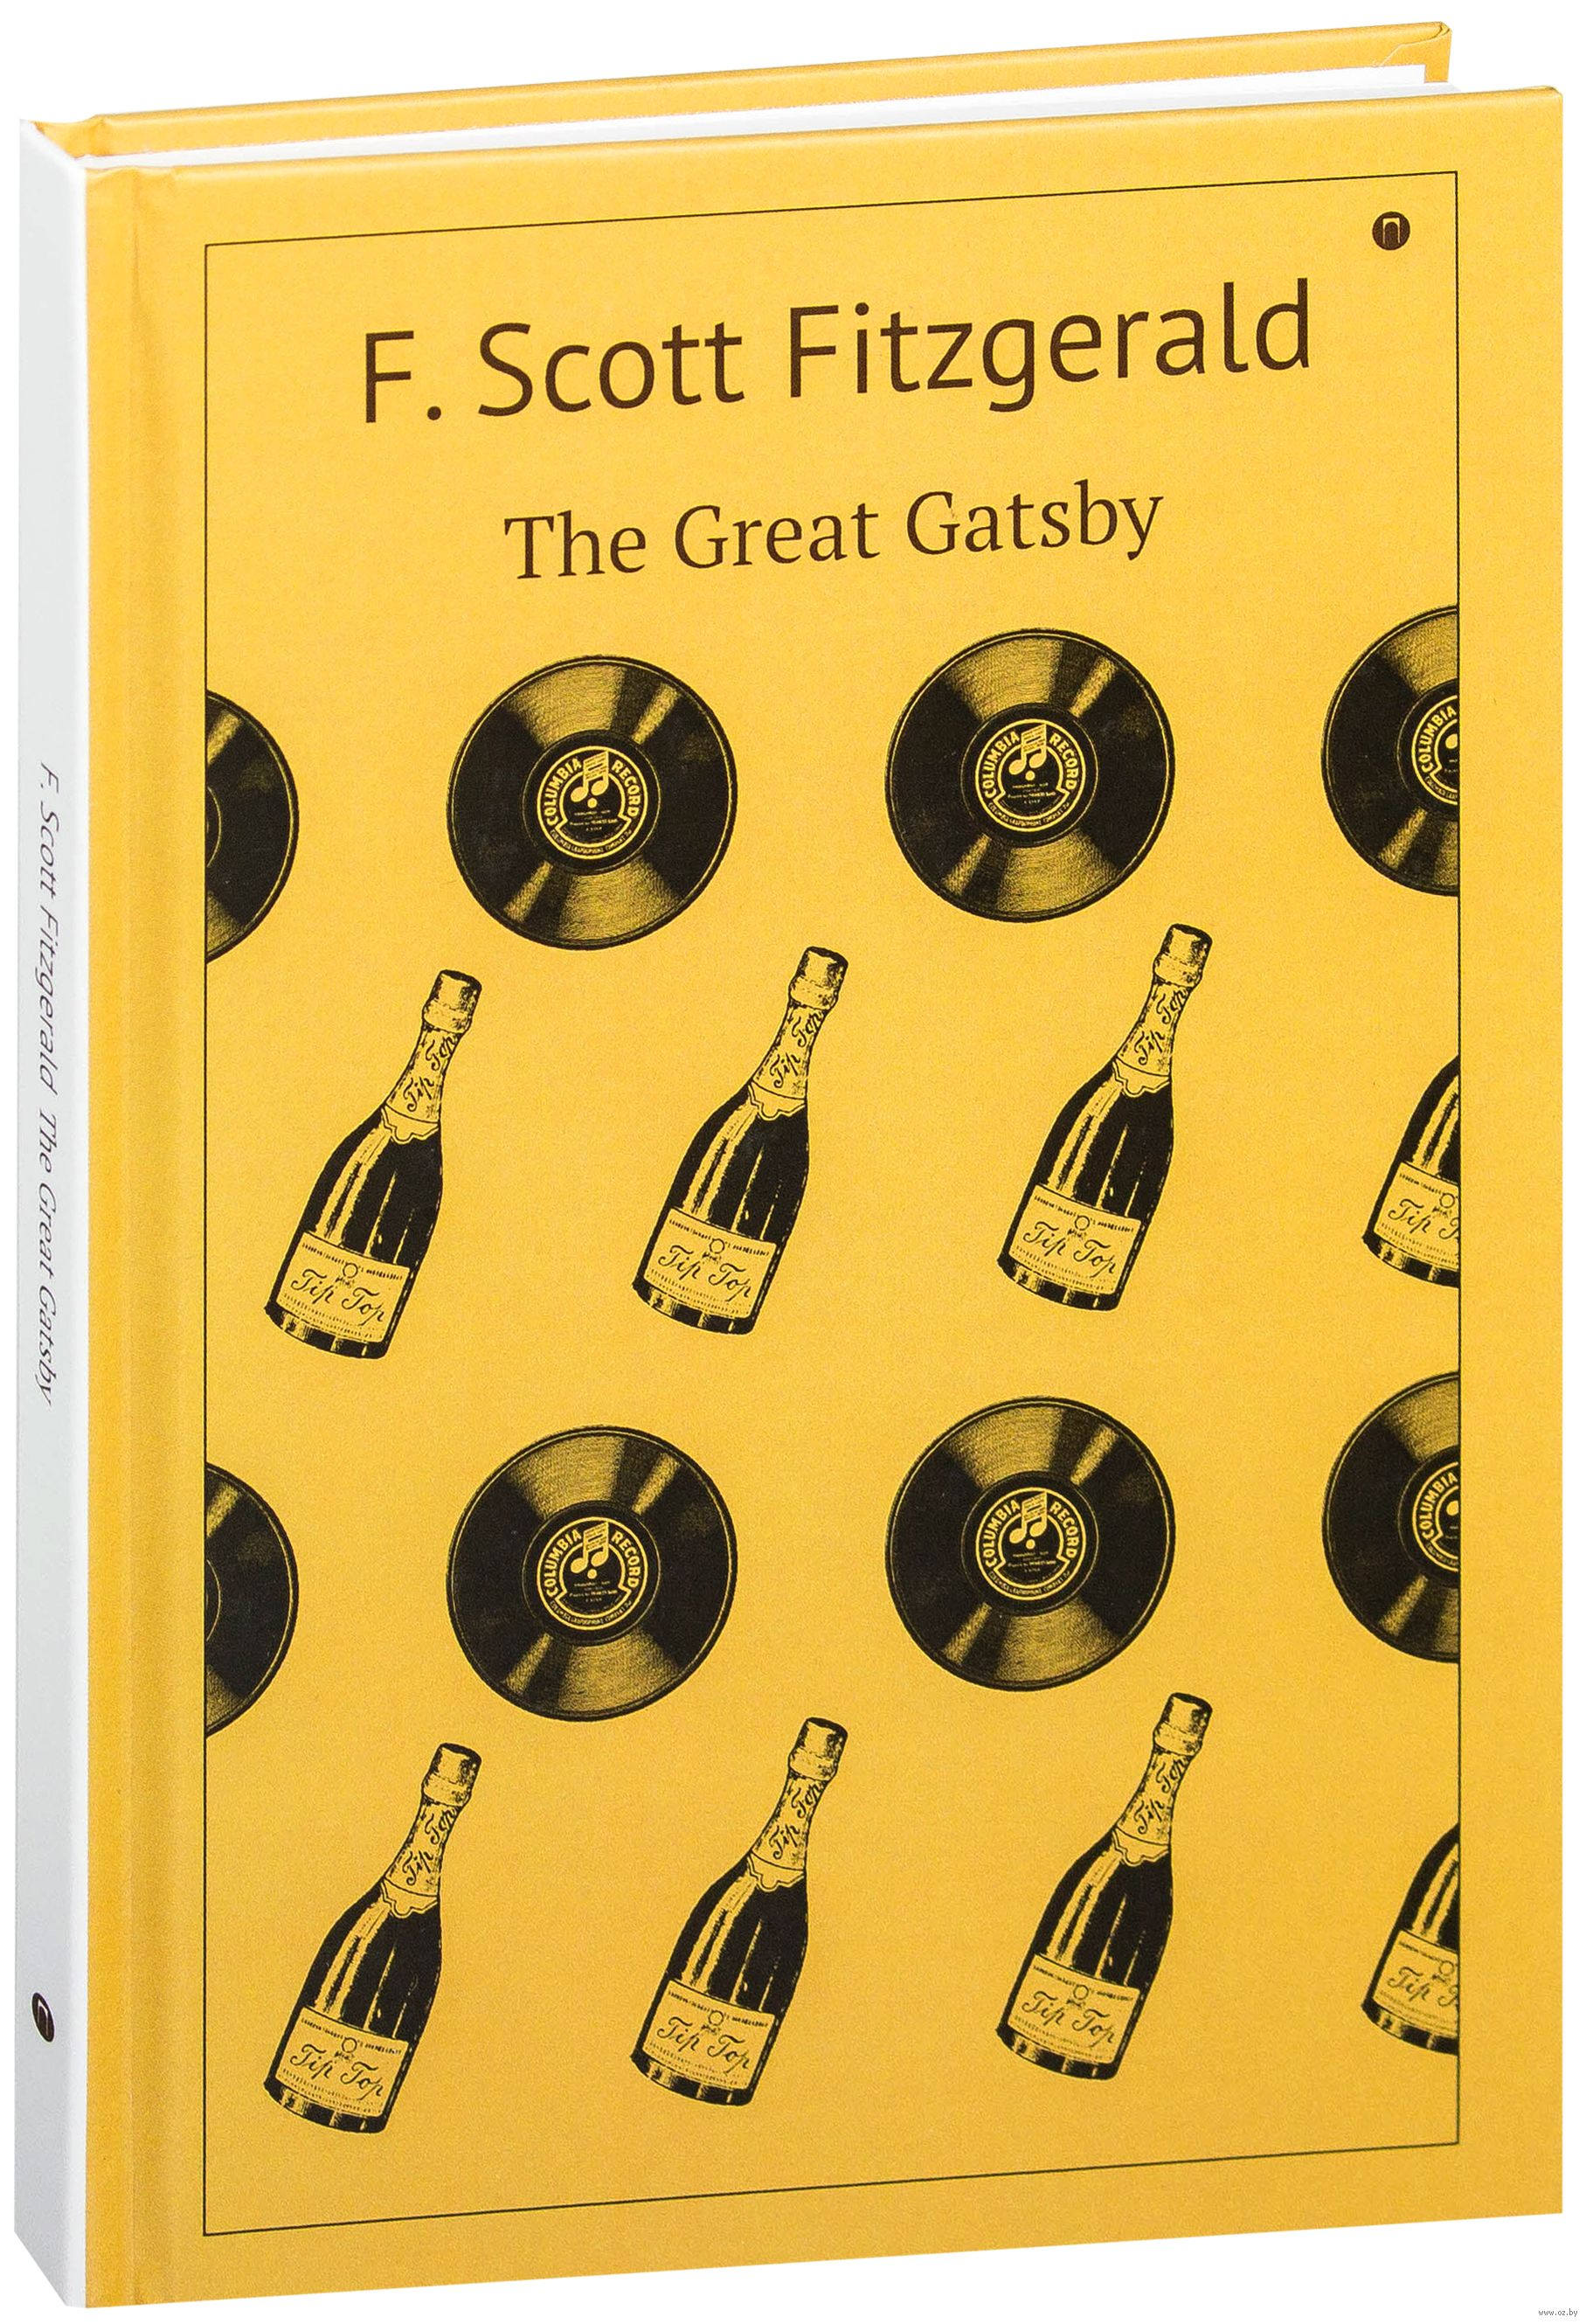 an analysis of characters from fitzgeralds the great gatsby The great gatsby is not based on a true story, and there wasn't a specific person in f scott fitzgerald's life who inspired the character of jay gatsby however, f scott fitzgerald did live briefly on long island (which is the inspiration for east egg and west egg) and spent time with new york celebrities.